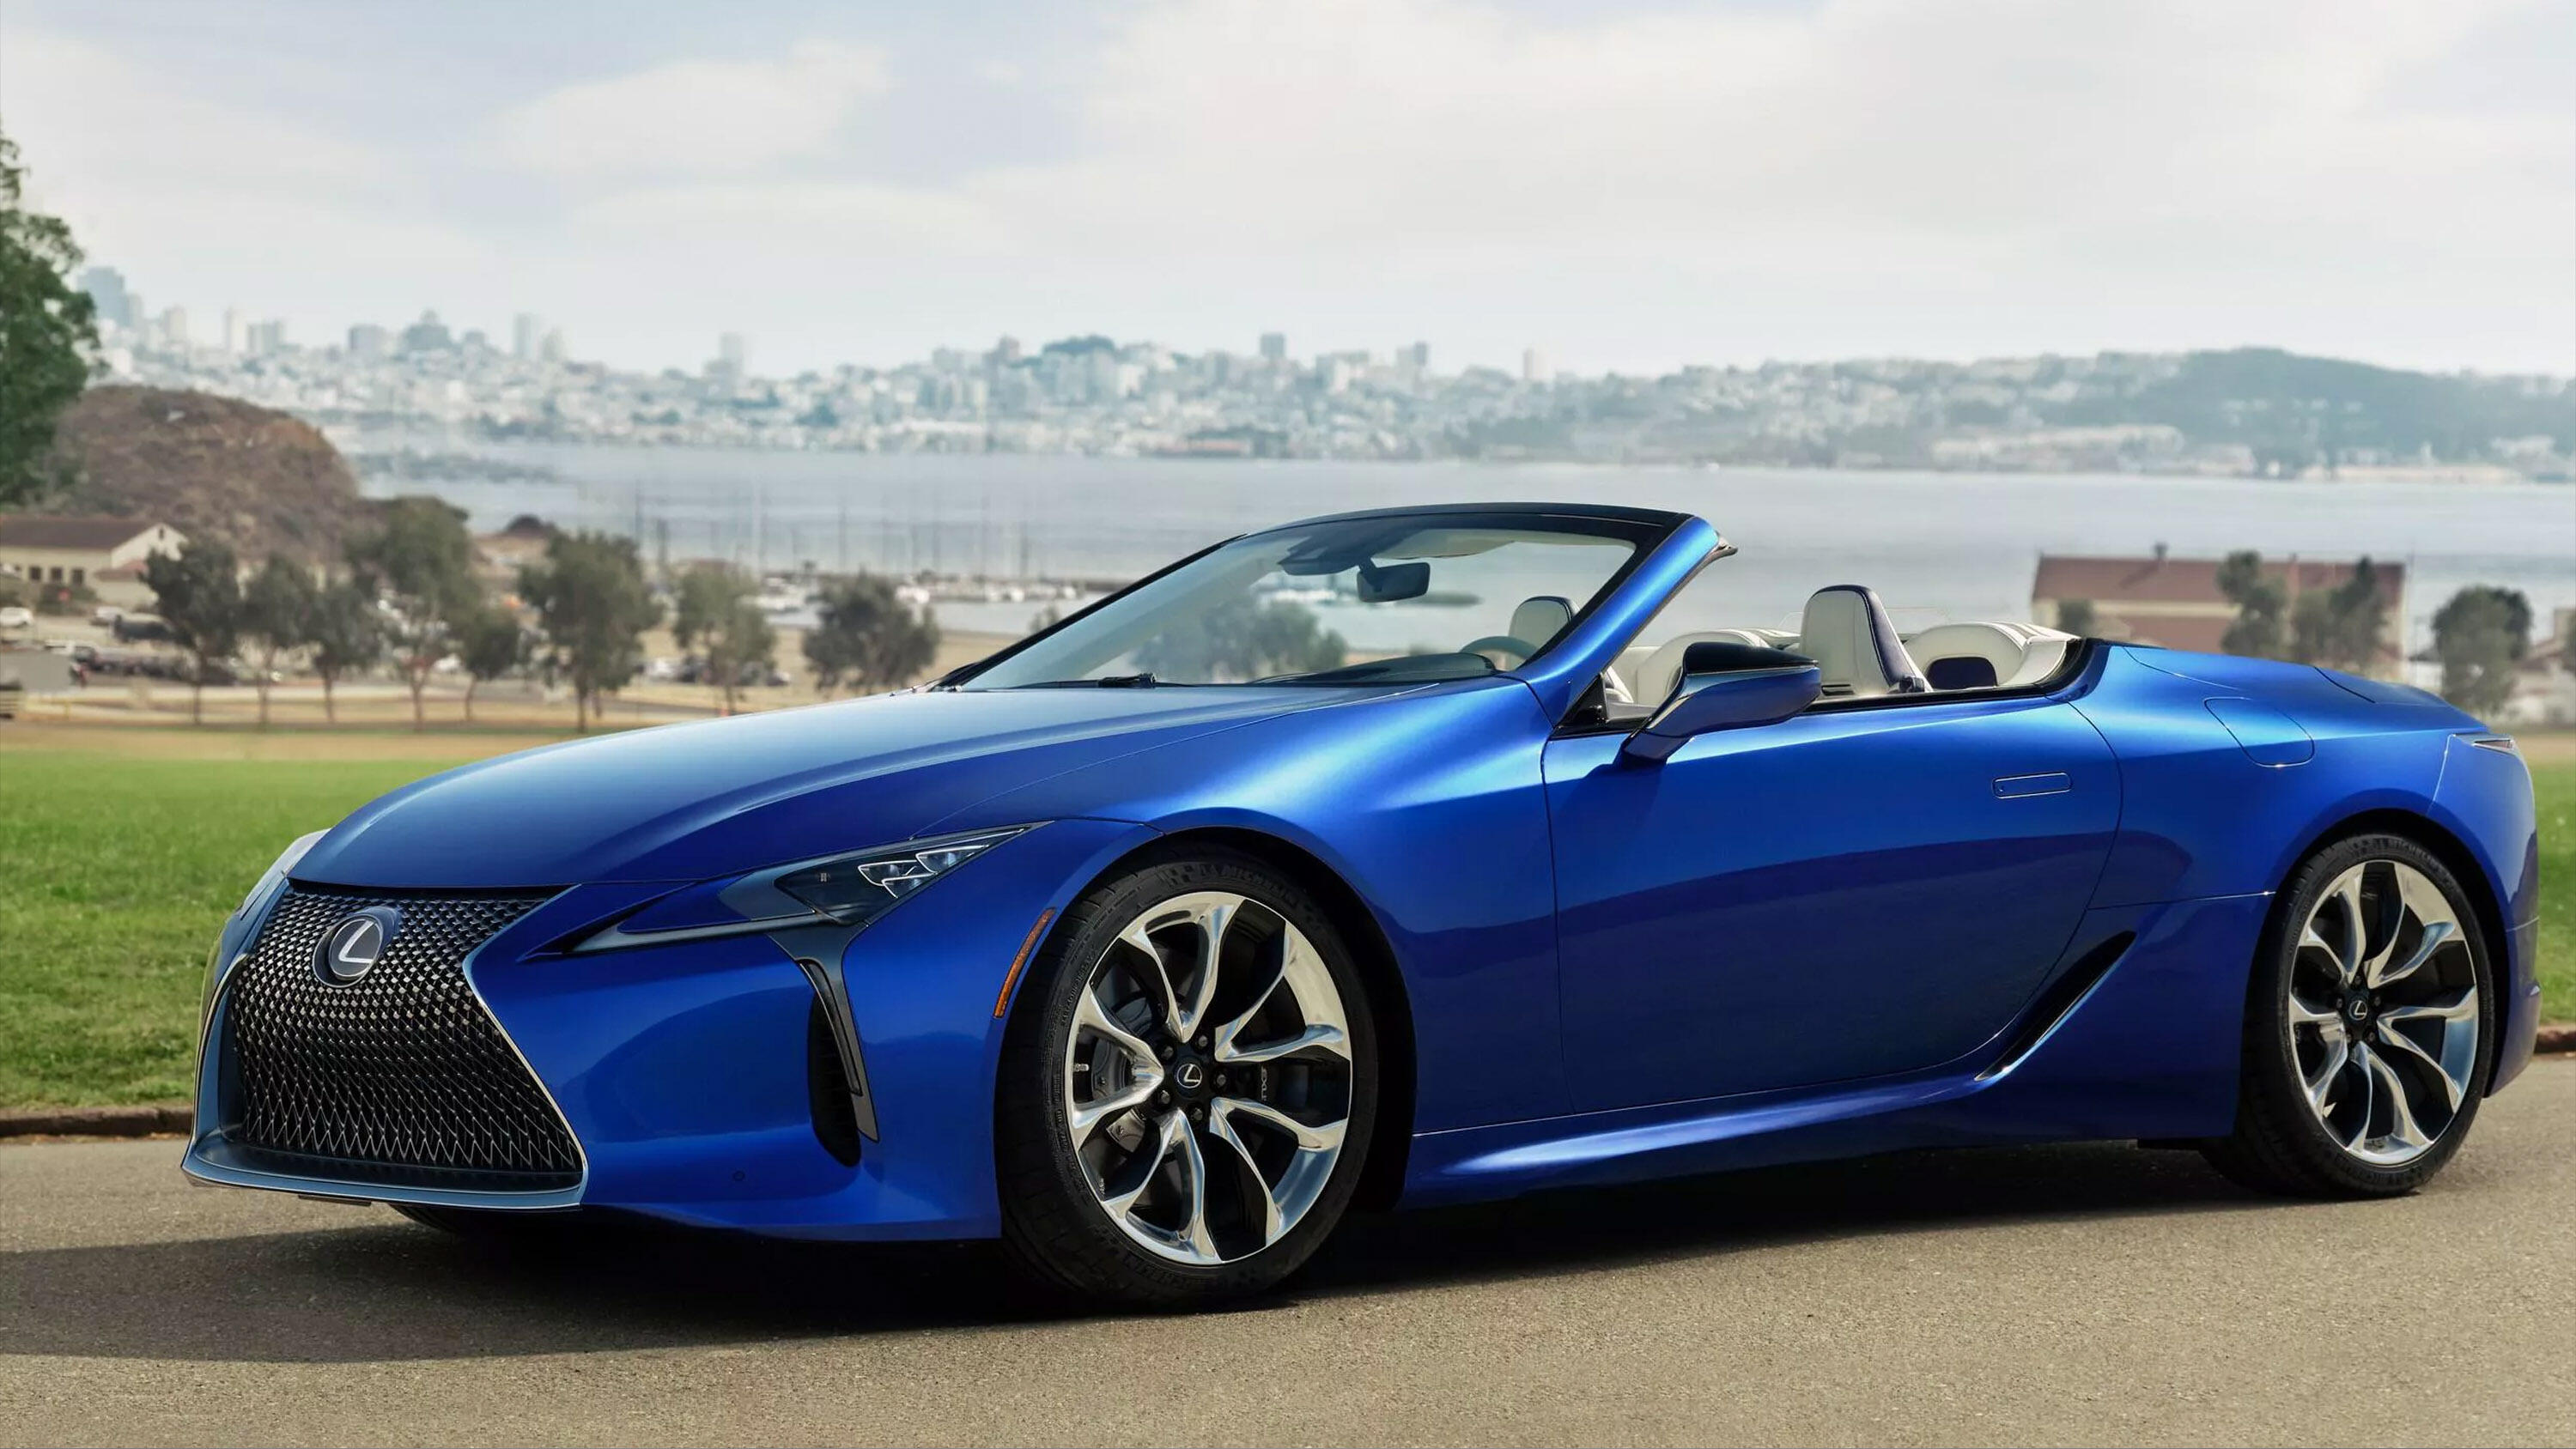 Video: 2021 Lexus LC 500 Convertible: Less roof, more gorgeous